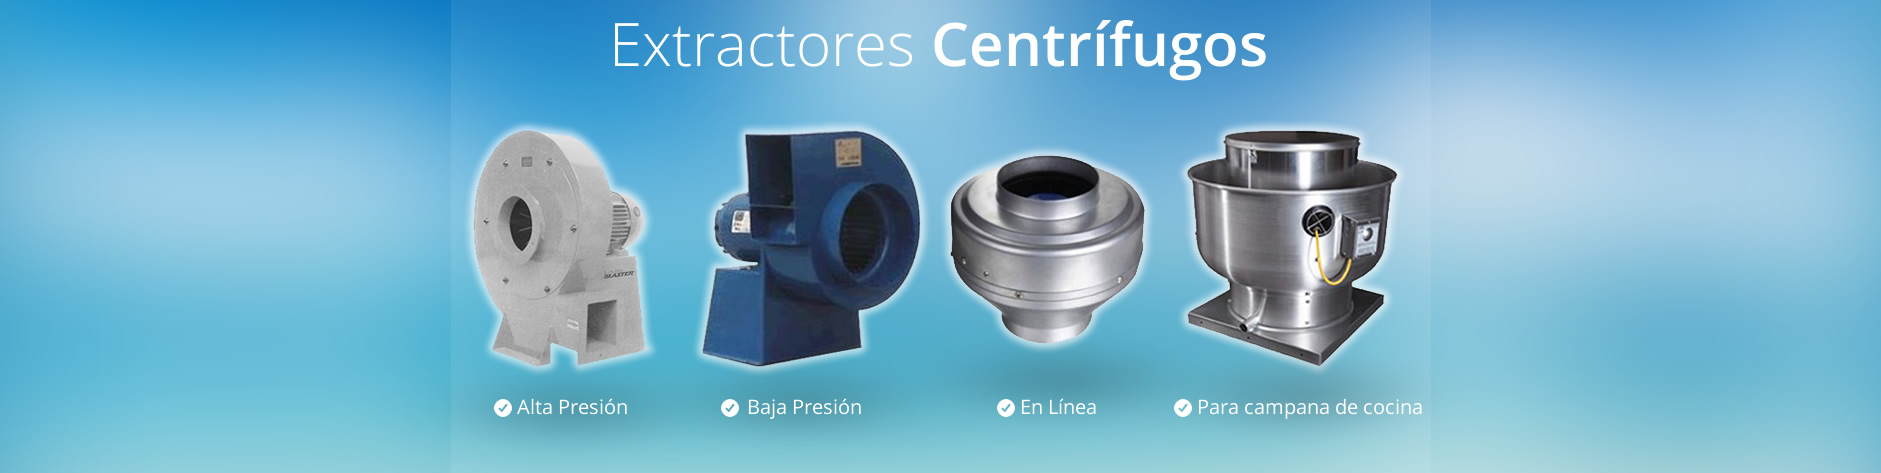 slider-extractores-centrifugos-air-master